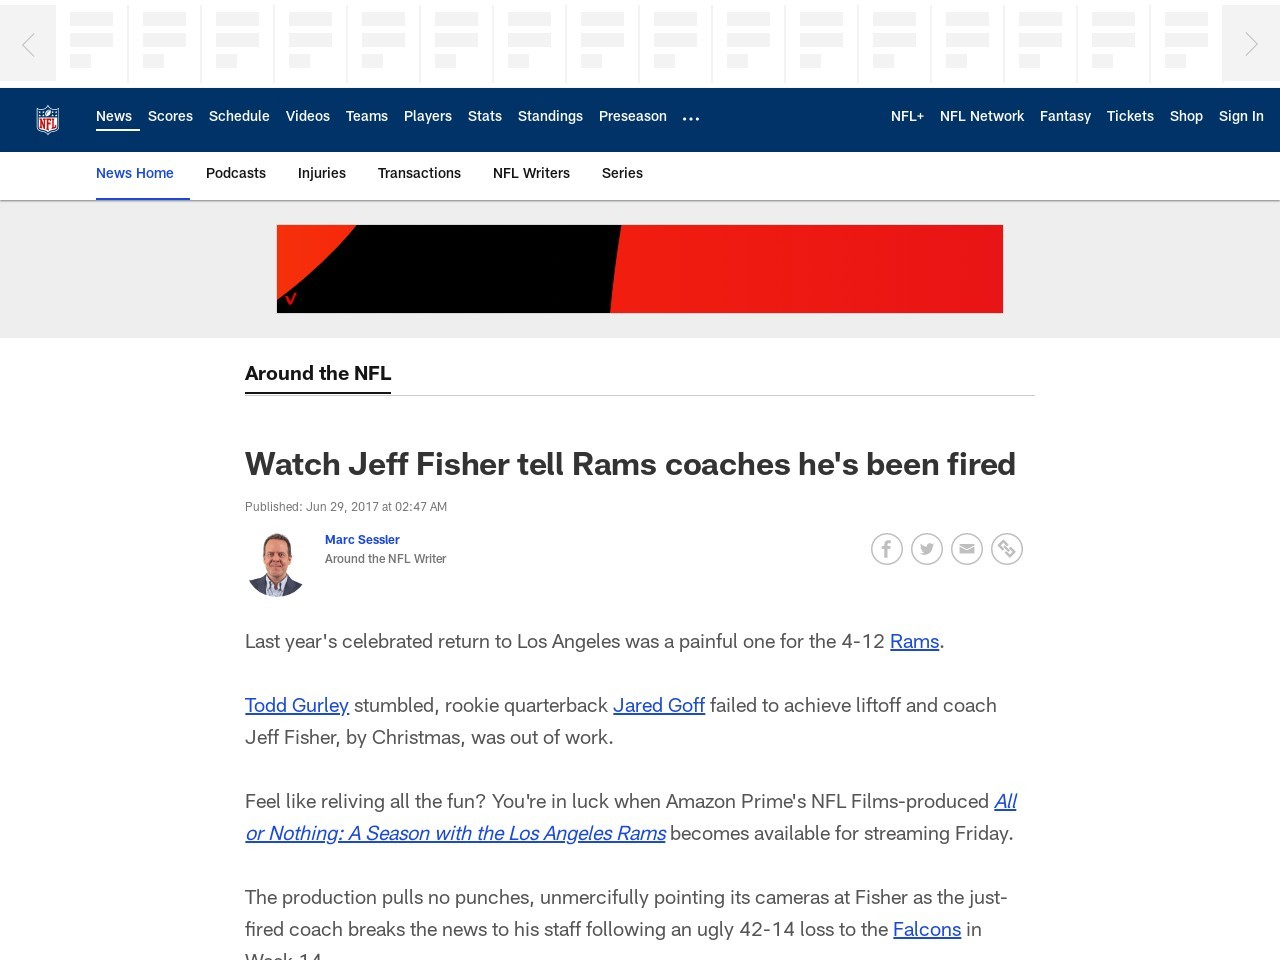 Watch Jeff Fisher tell Rams coaches he's been fired